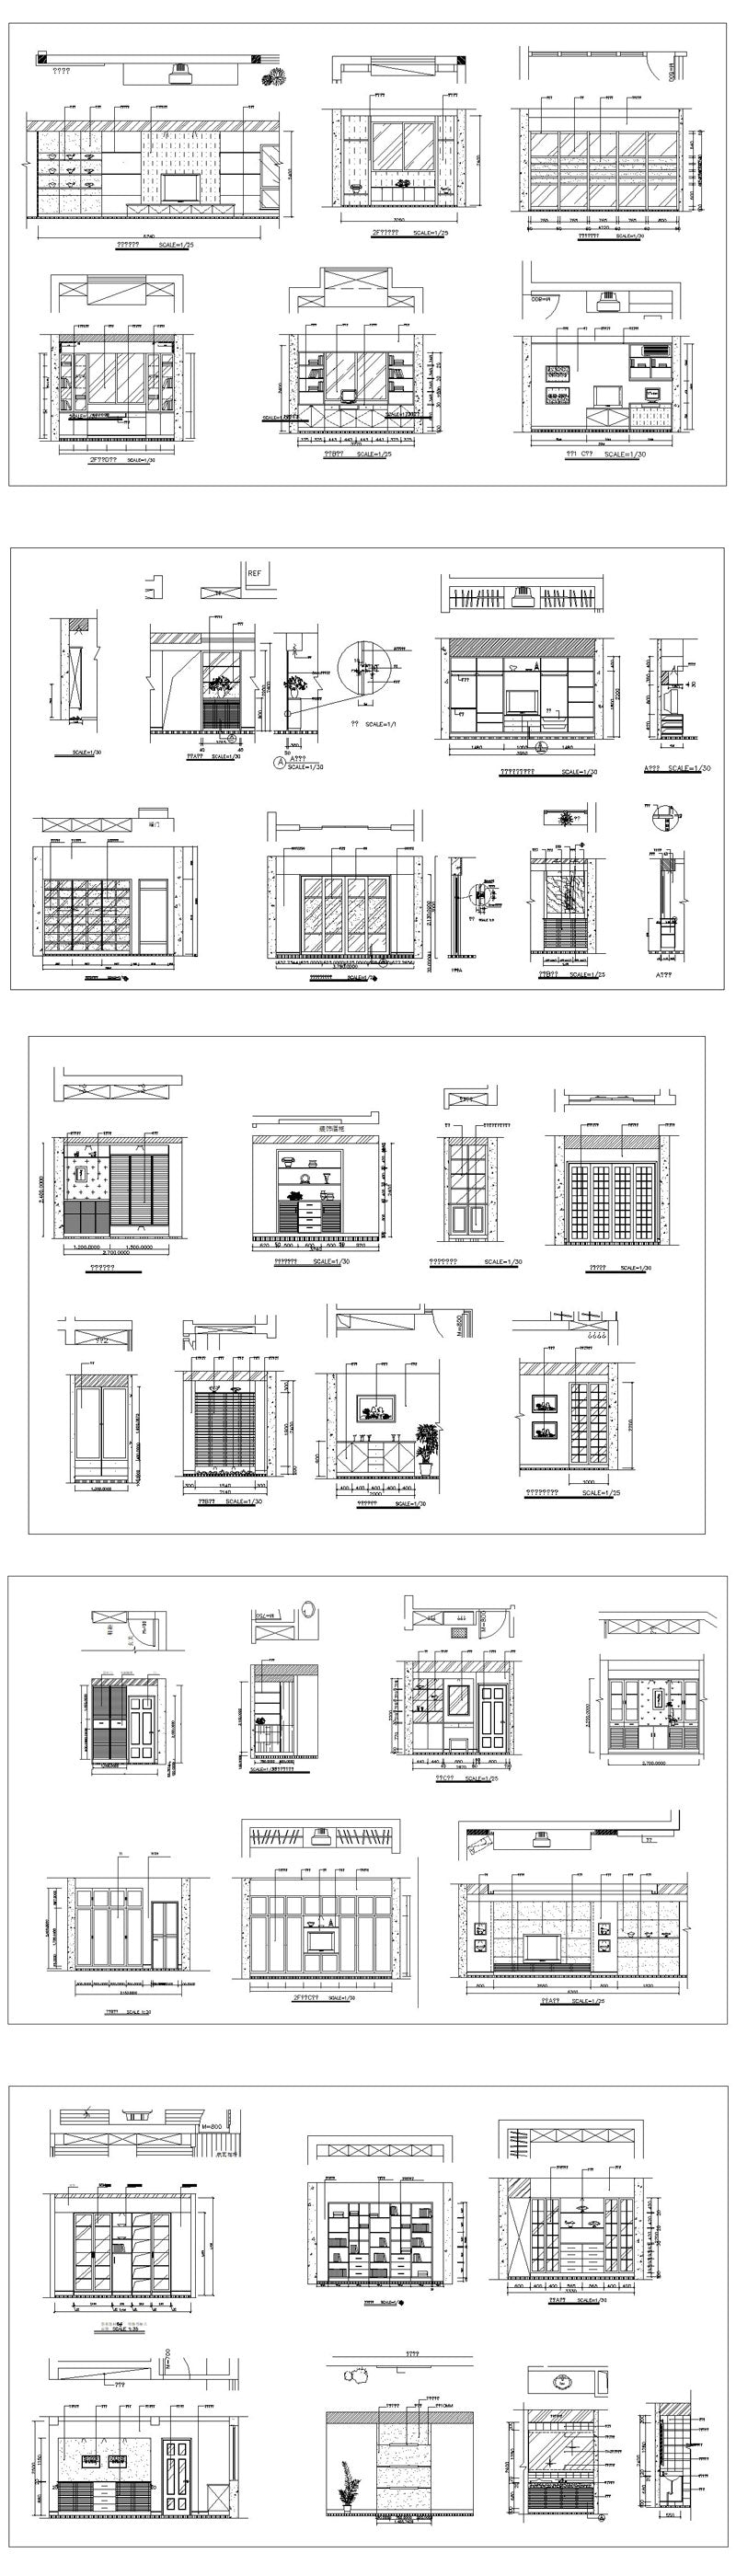 ★【Interior Design CAD Design,Details,Elevation Collection】Residential Building,Layout,Lobby,Room design,Decoration@Autocad Blocks,Drawings,CAD Details,Elevation